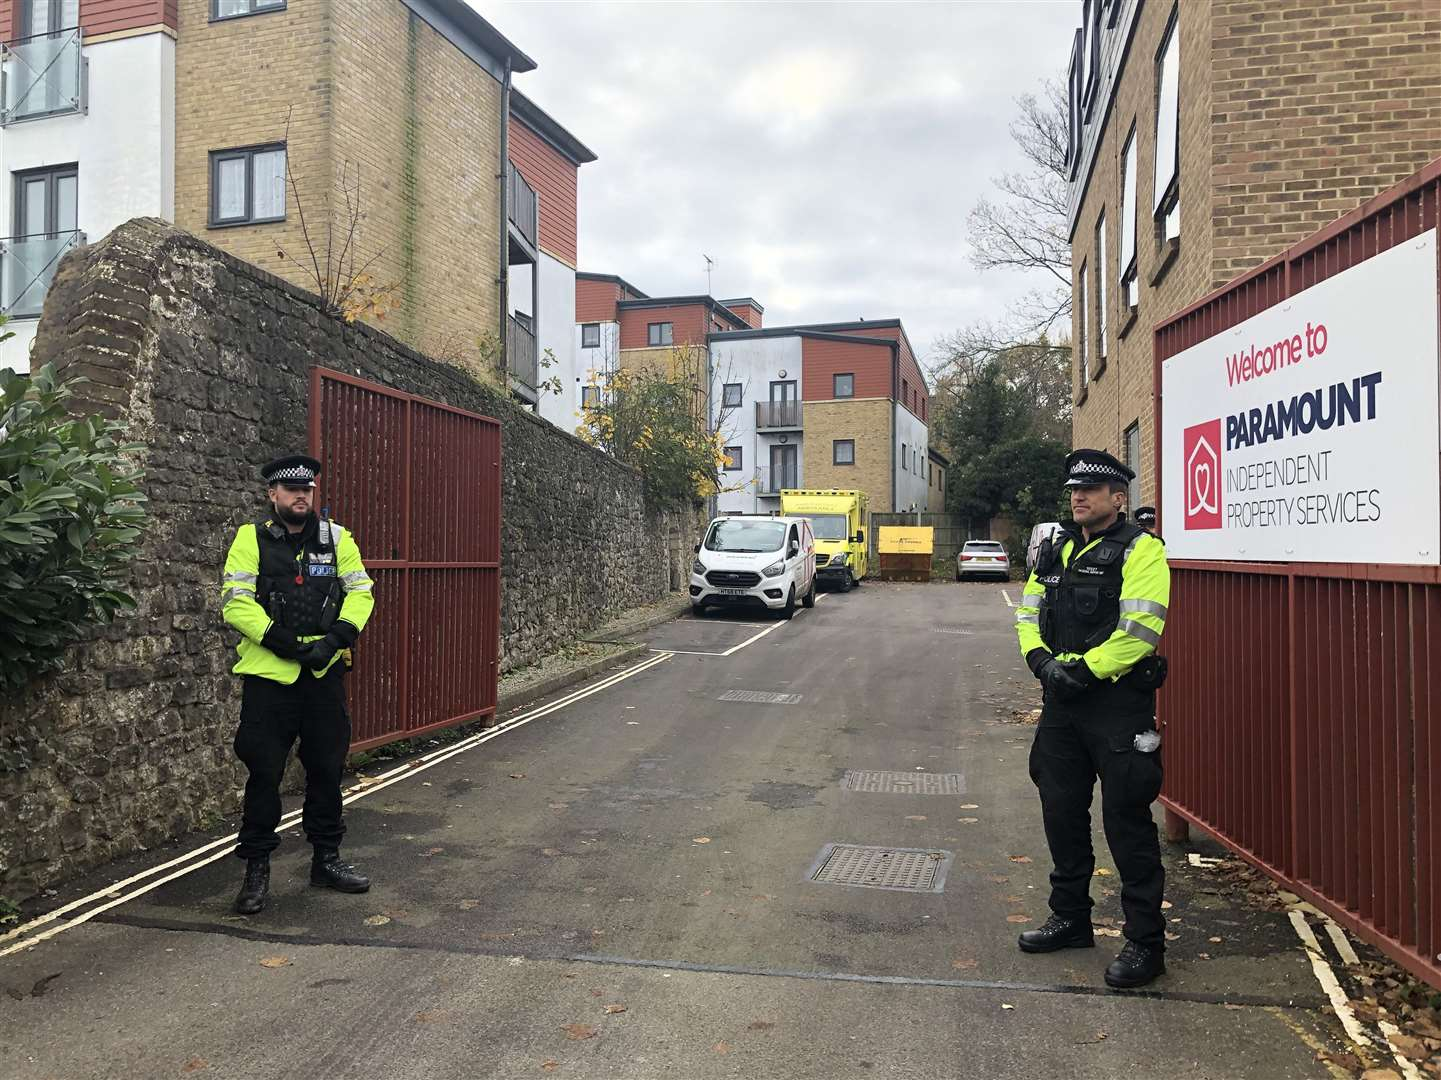 Police stand at the entrance to Chaucer House, Knightrider Street, Maidstone, during a visit from the jury in November